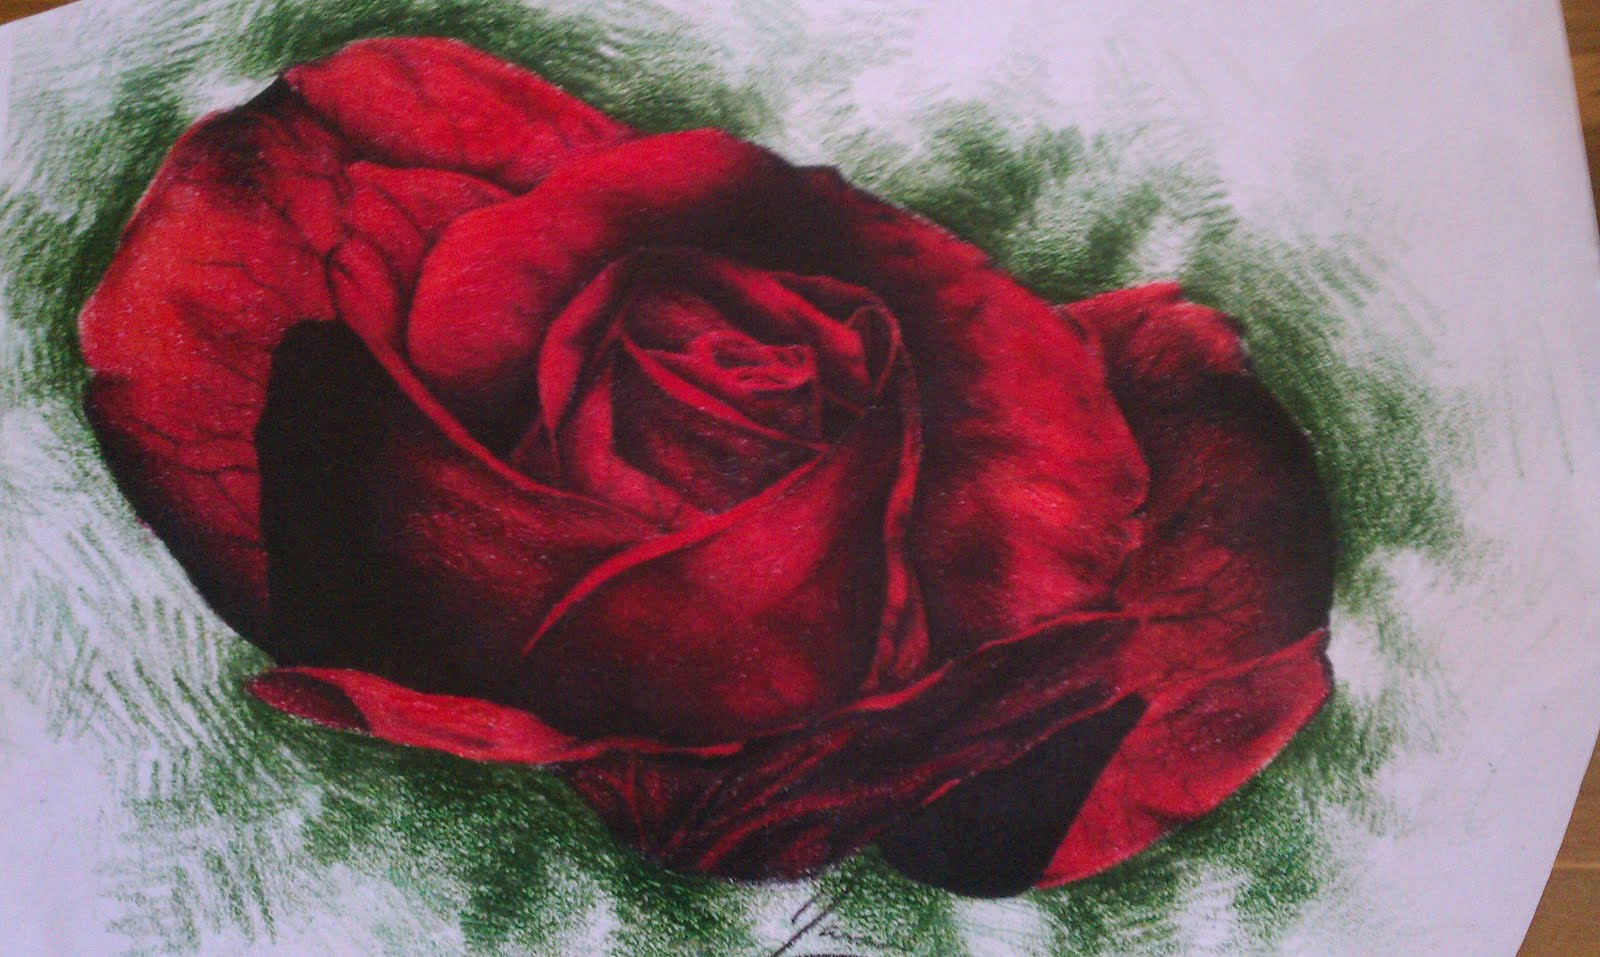 The Hodge-Podge Gallery: Flower Drawings